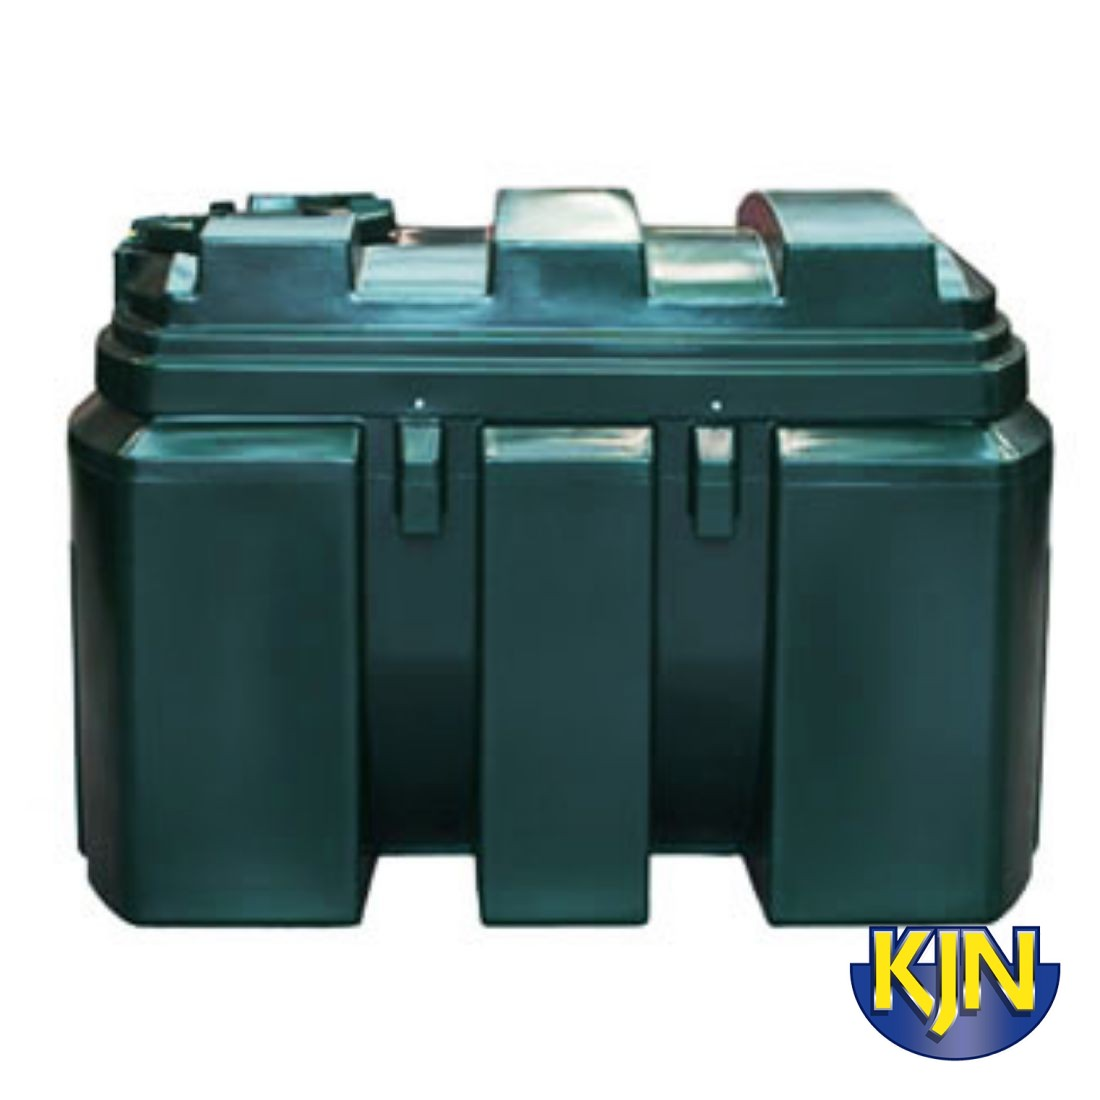 Titan Ecosafe Bunded Oil Tank 1300 Litre Bottom Or Top Outlet